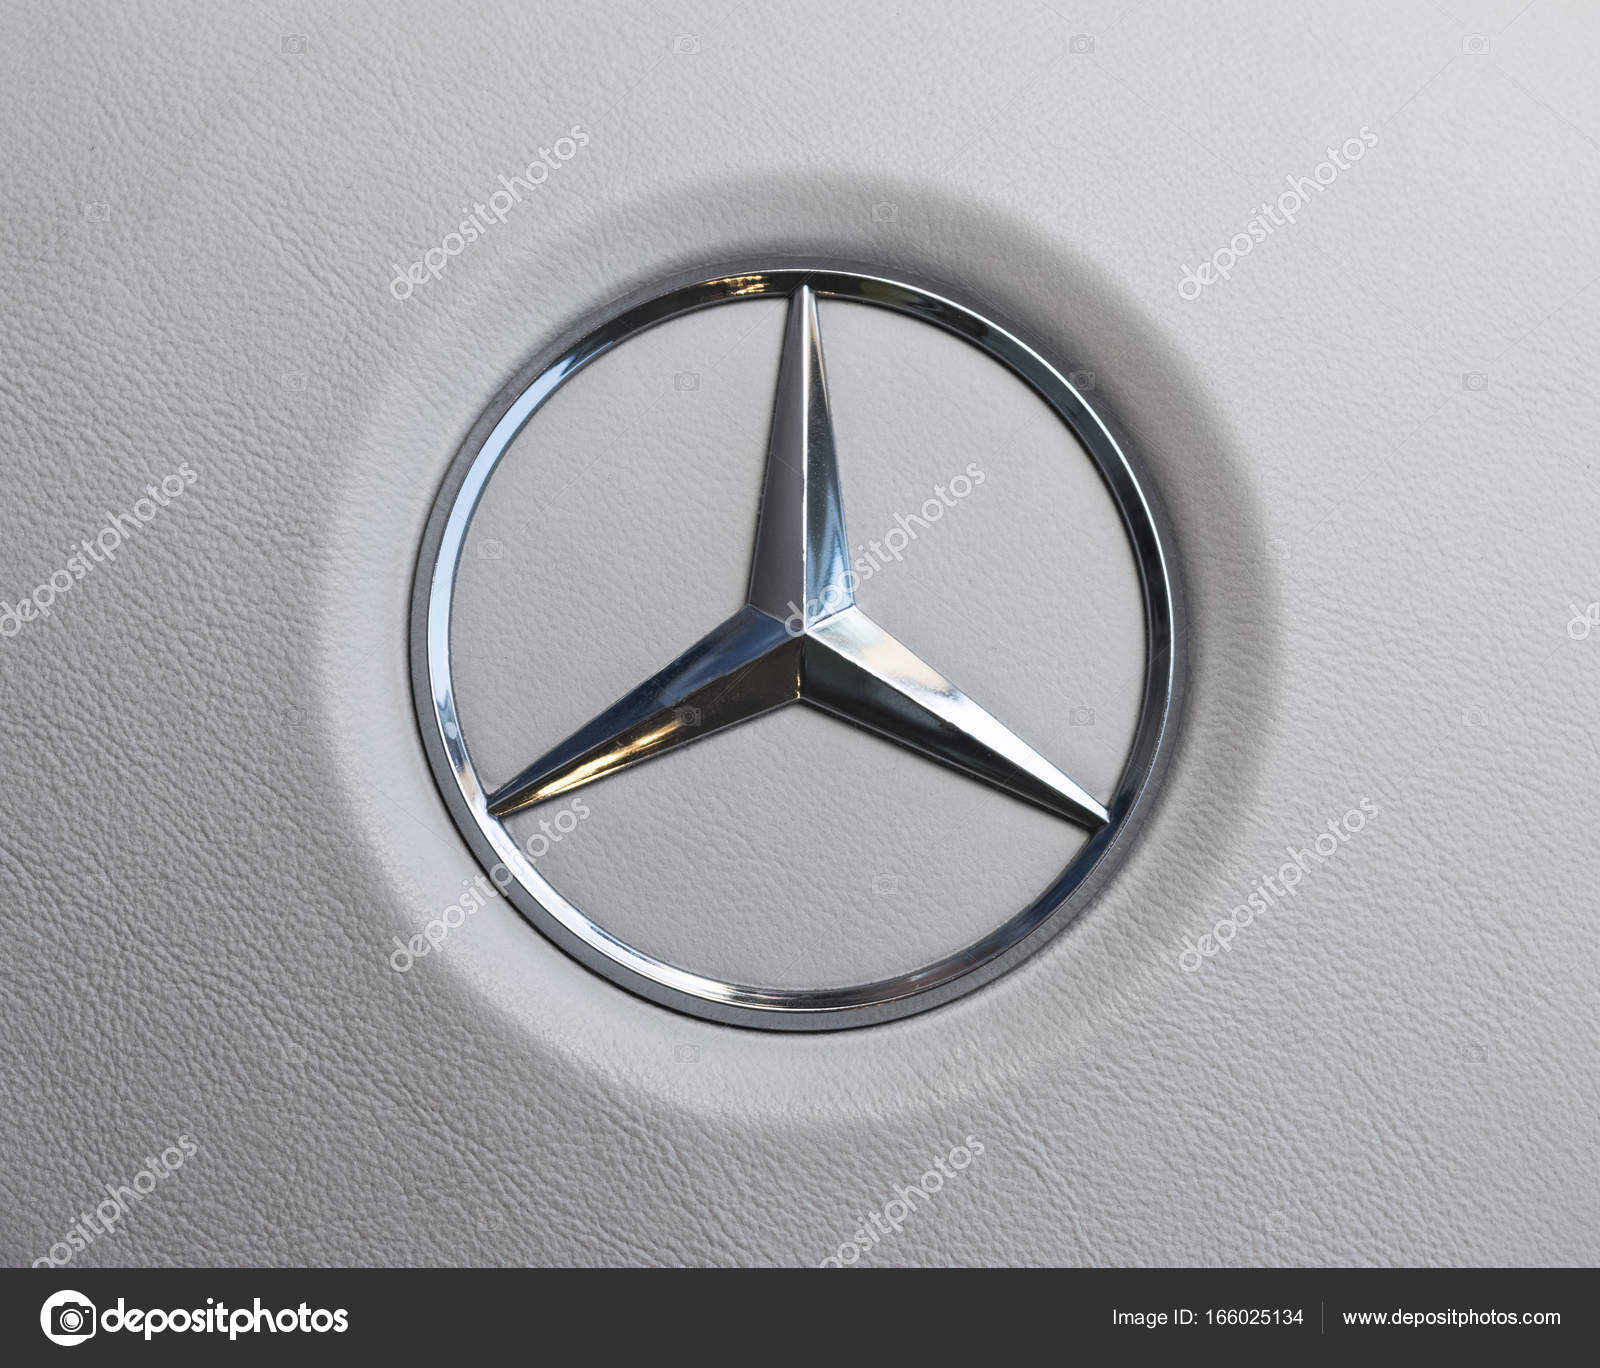 Close up view of a mercedes benz logo on white leather steering imatra finland september 3 2017 close up view of a mercedes benz logo on white leather steering wheel modern car interior details biocorpaavc Image collections